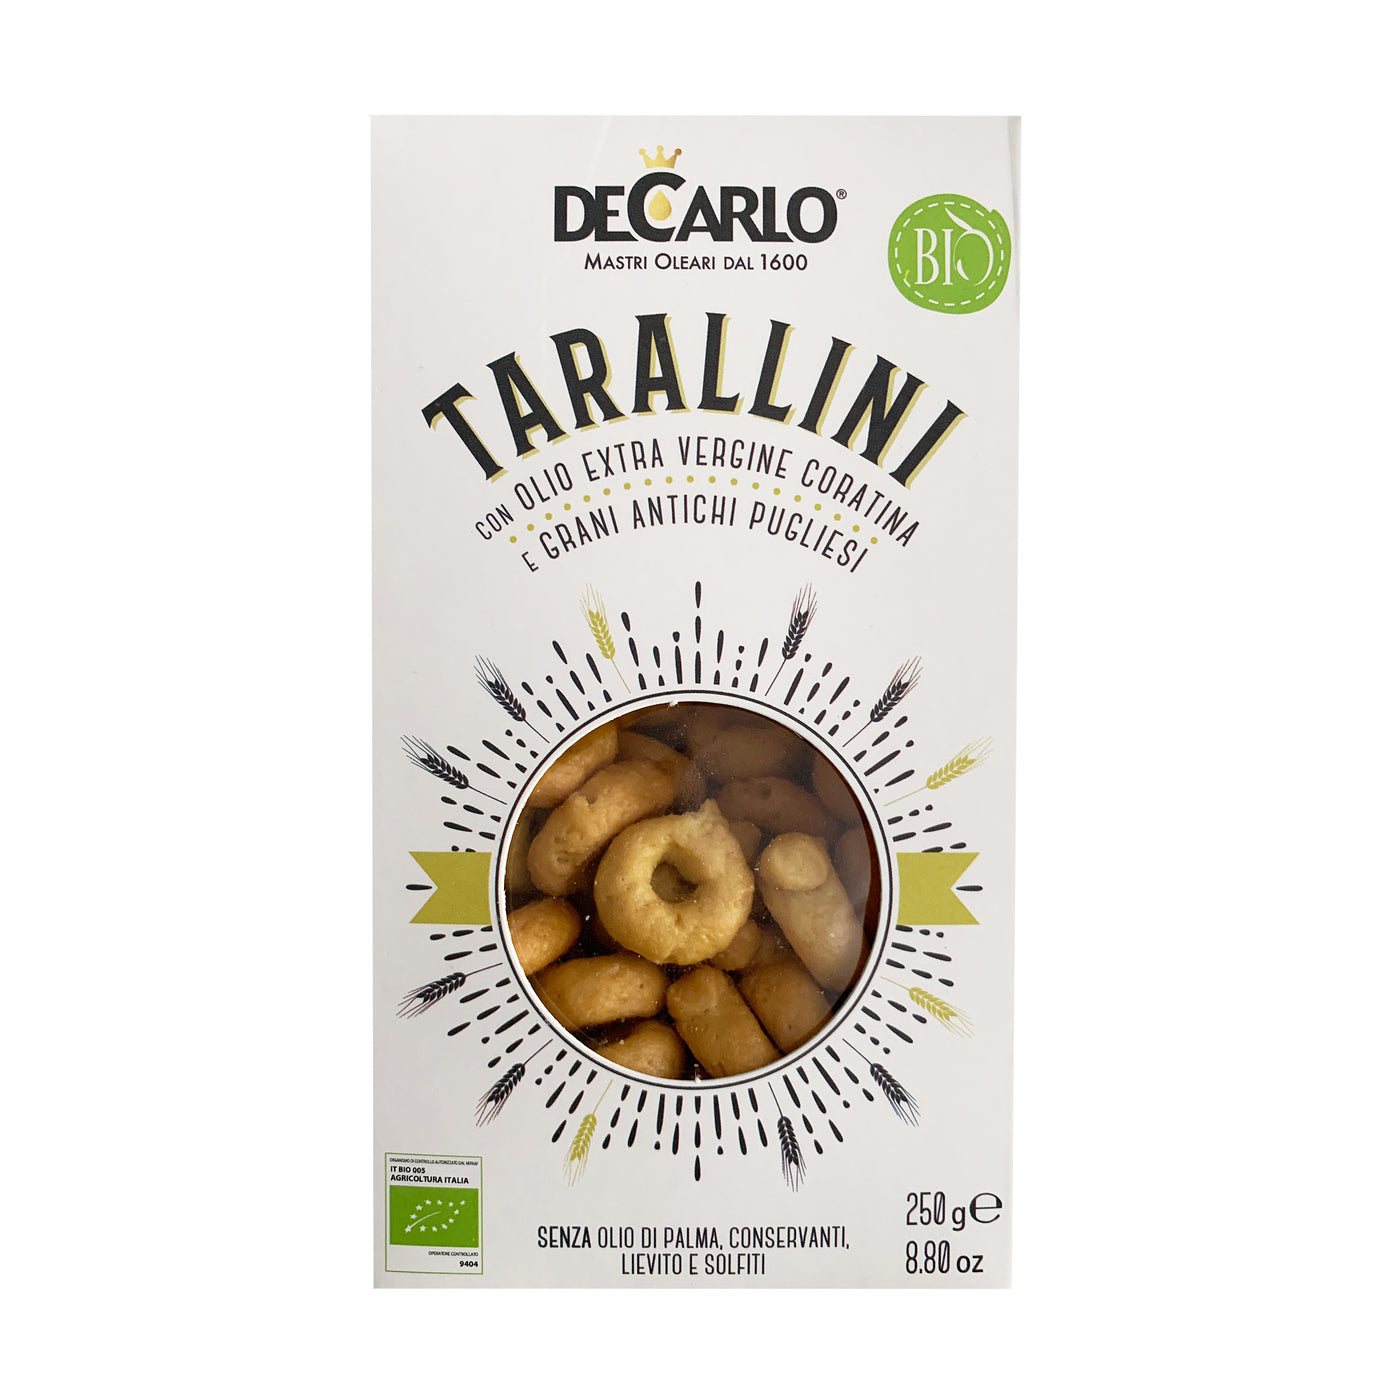 DeCarlo USDA Organic Tarallini with Ancient Pugliesi Grains and Extra Virgin Olive Oil - 250g